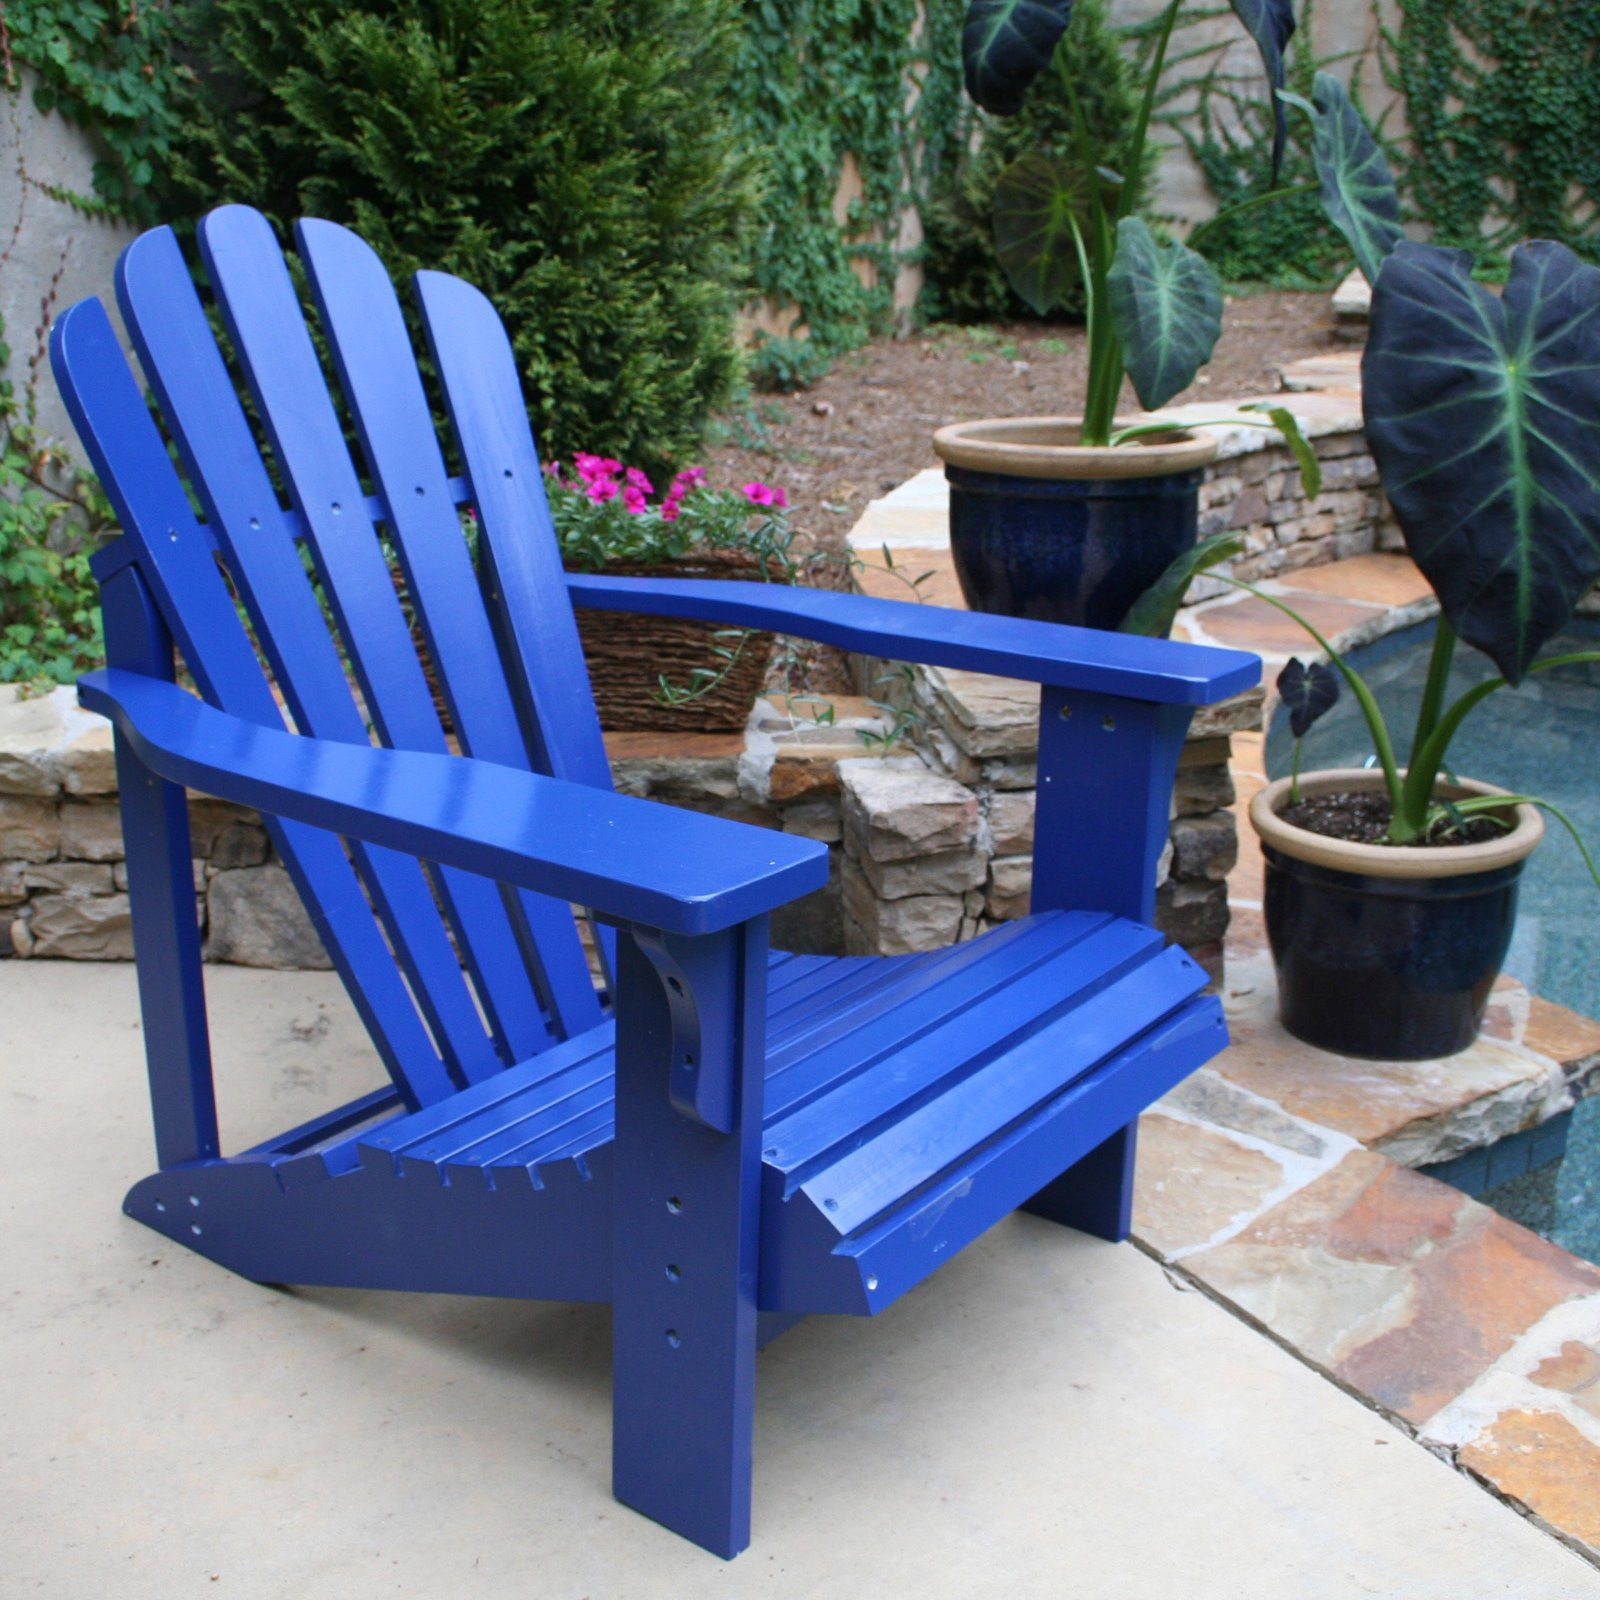 Relaxing in Style The Adirondack Chair